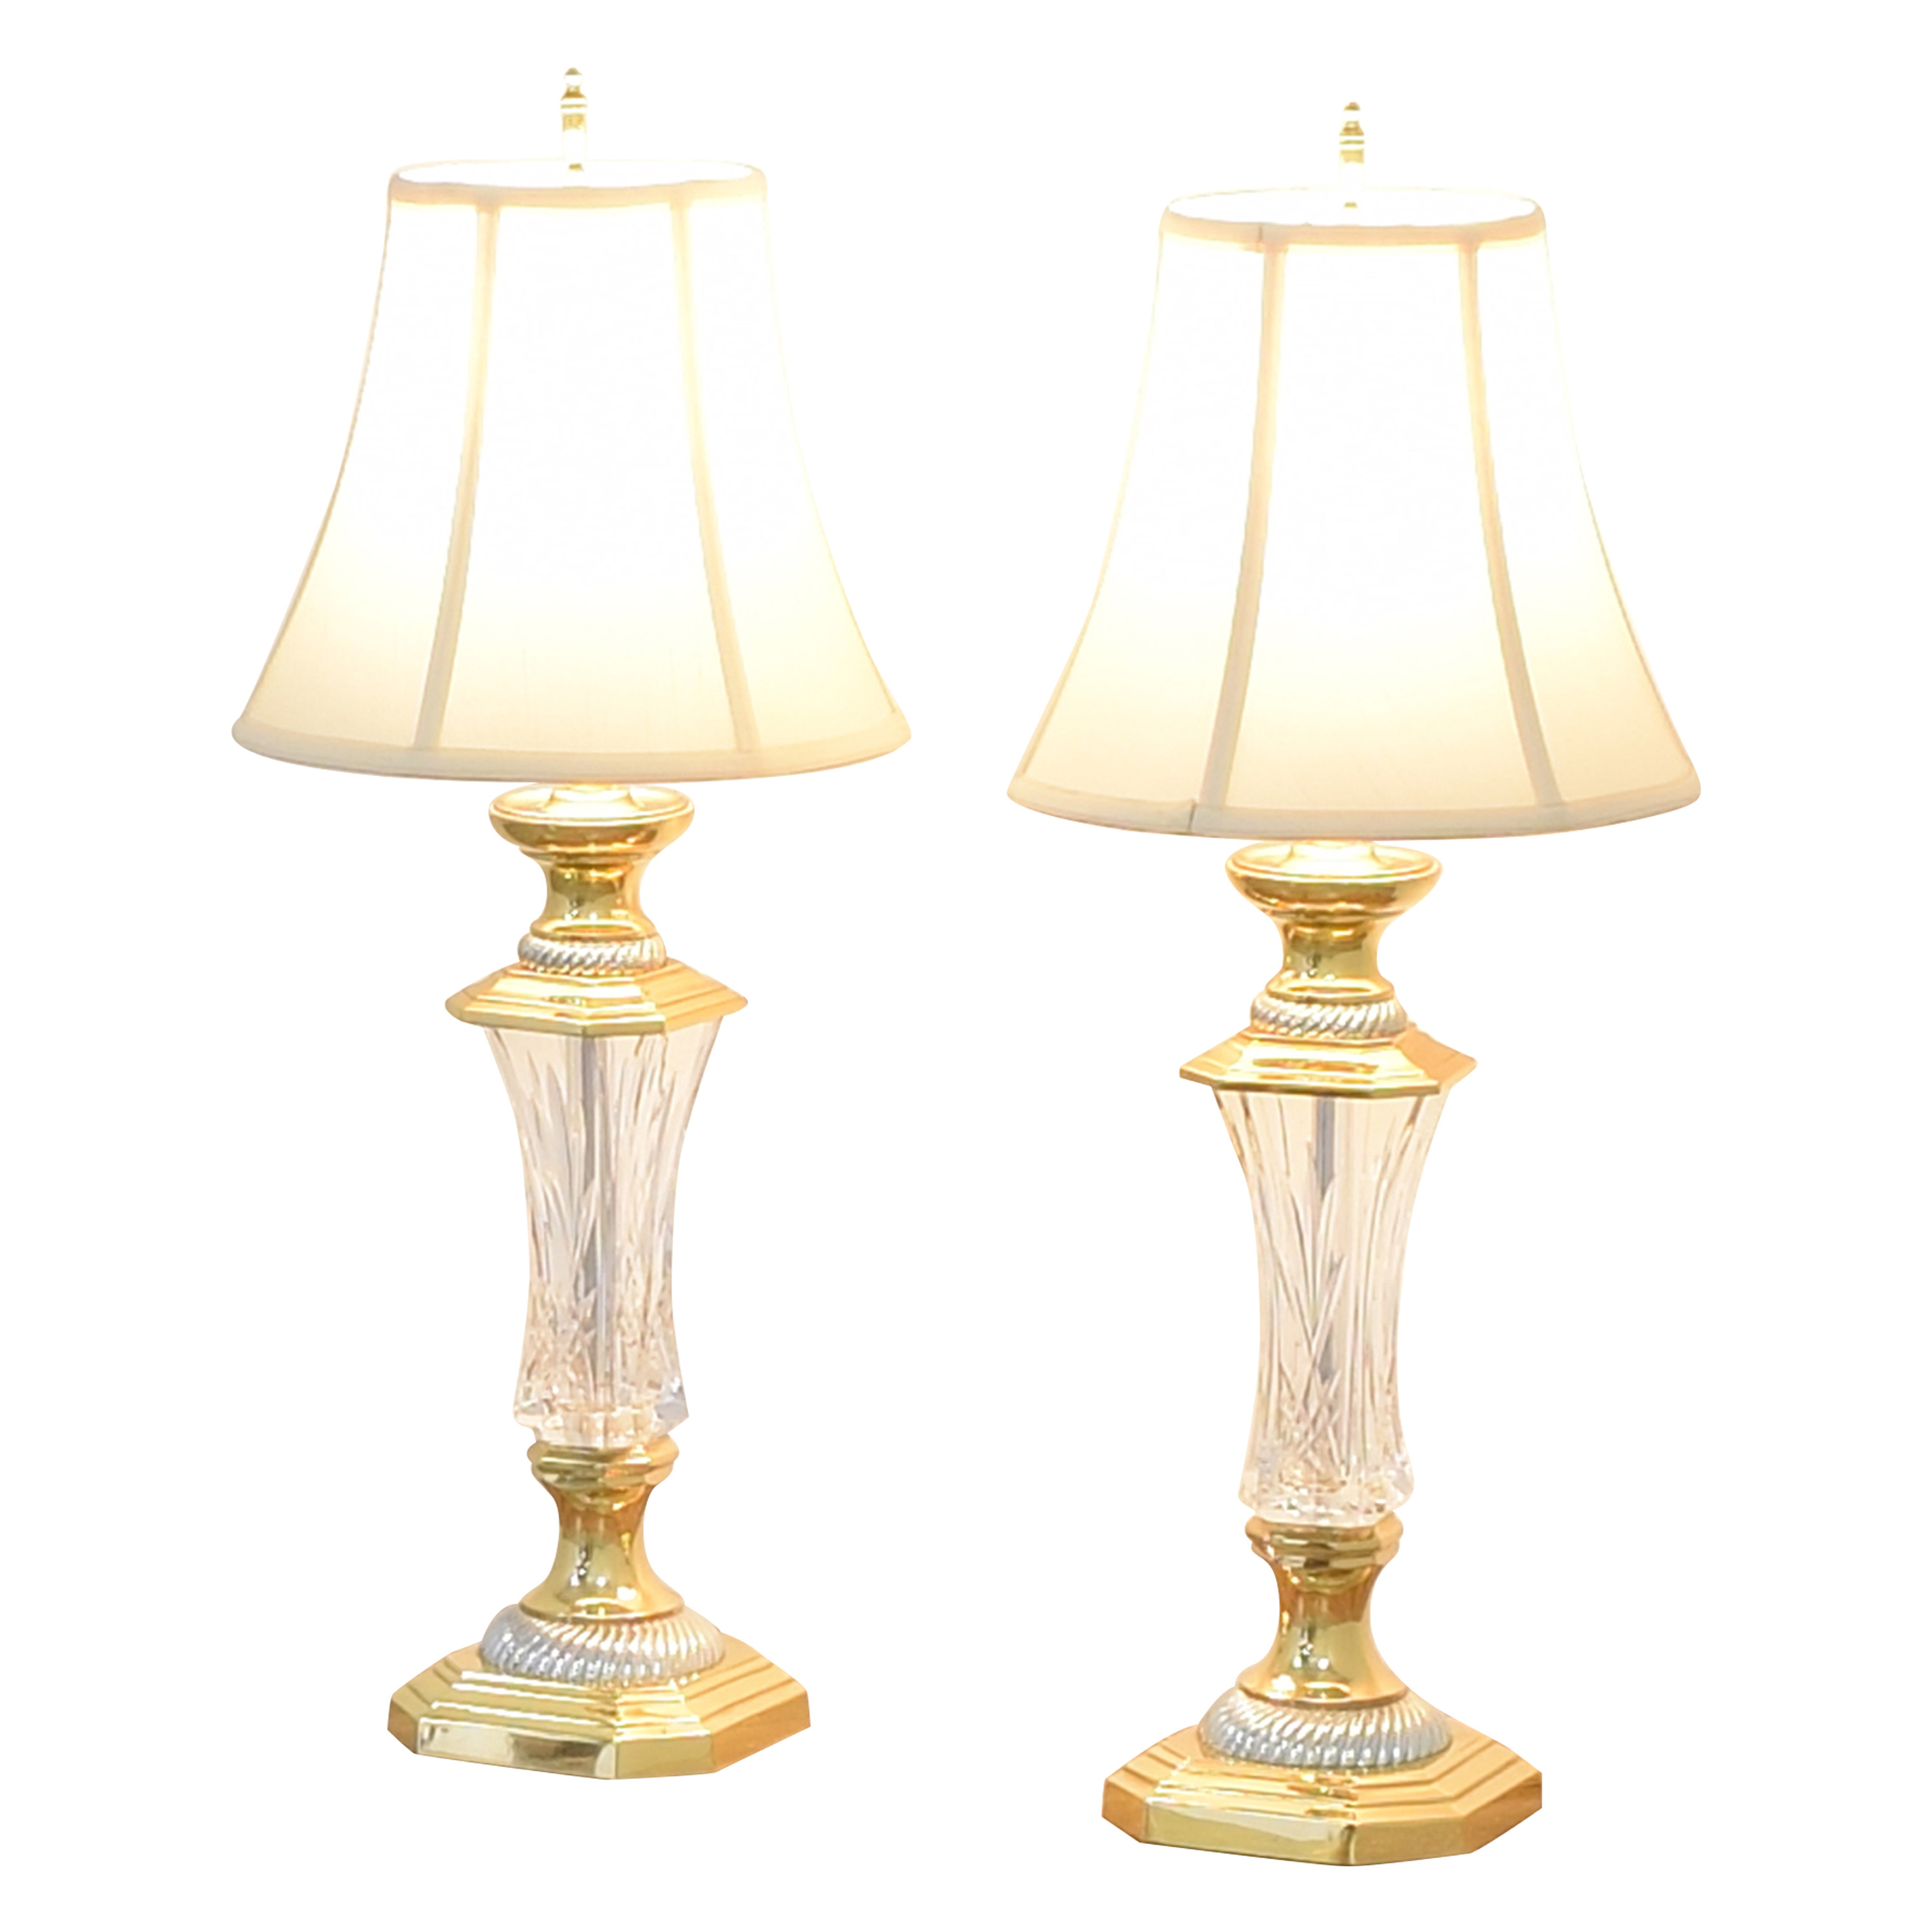 Waterford Waterford Florence Court Table Lamps on sale